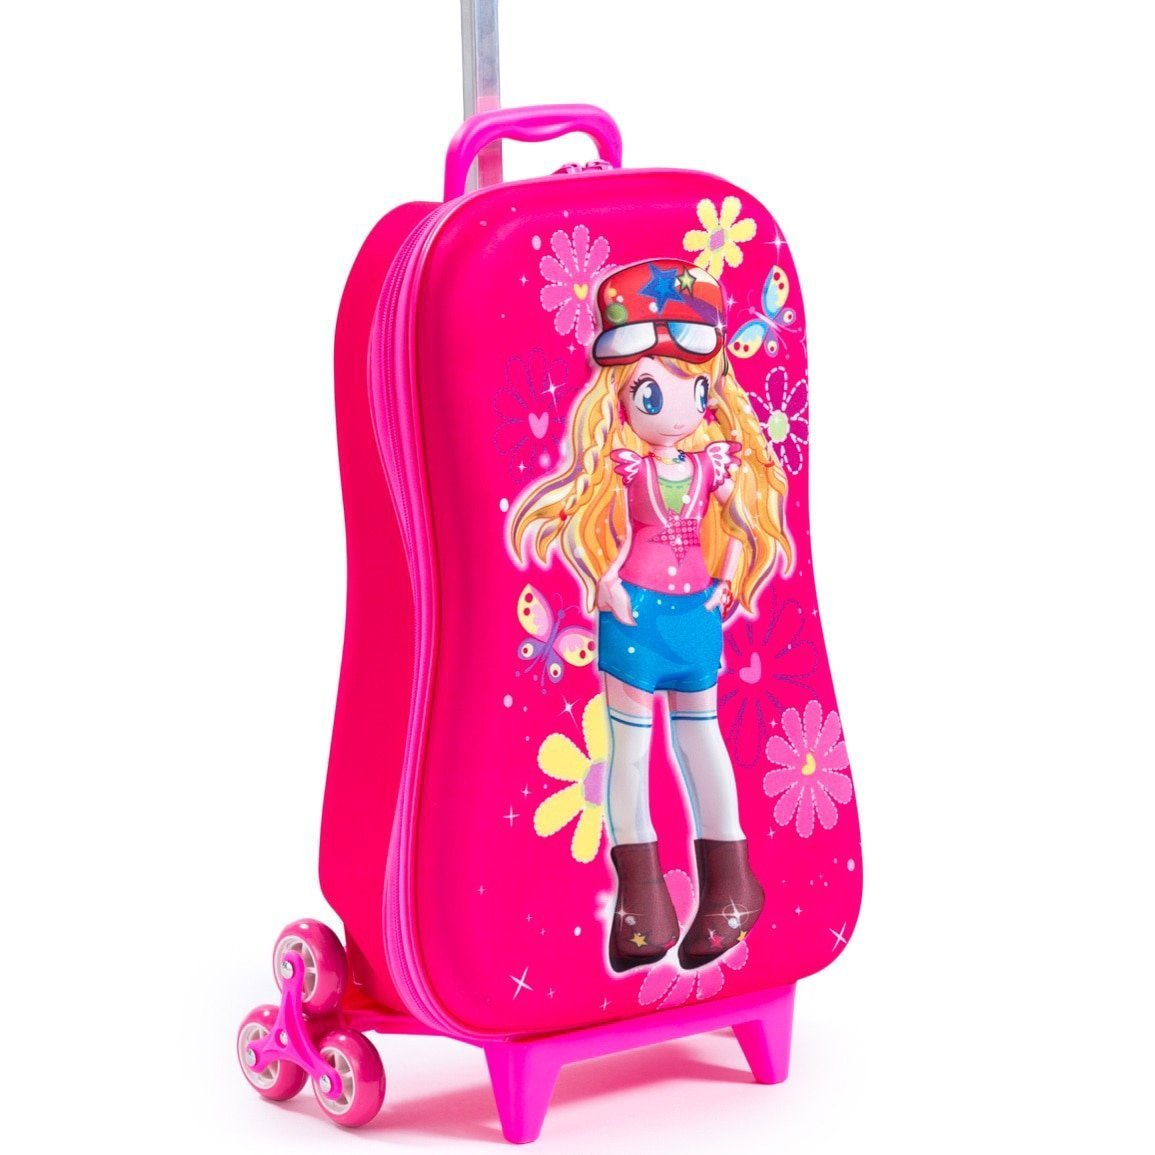 Girls Pink 3D Cute Face Princess Theme Wheeled Upright Rolling Suitcase, All OverFlowers, Fashionable, Travel Wheeled Suit Bag Wheels, Butterflies Carry, Wheeling Luggage by DSOS